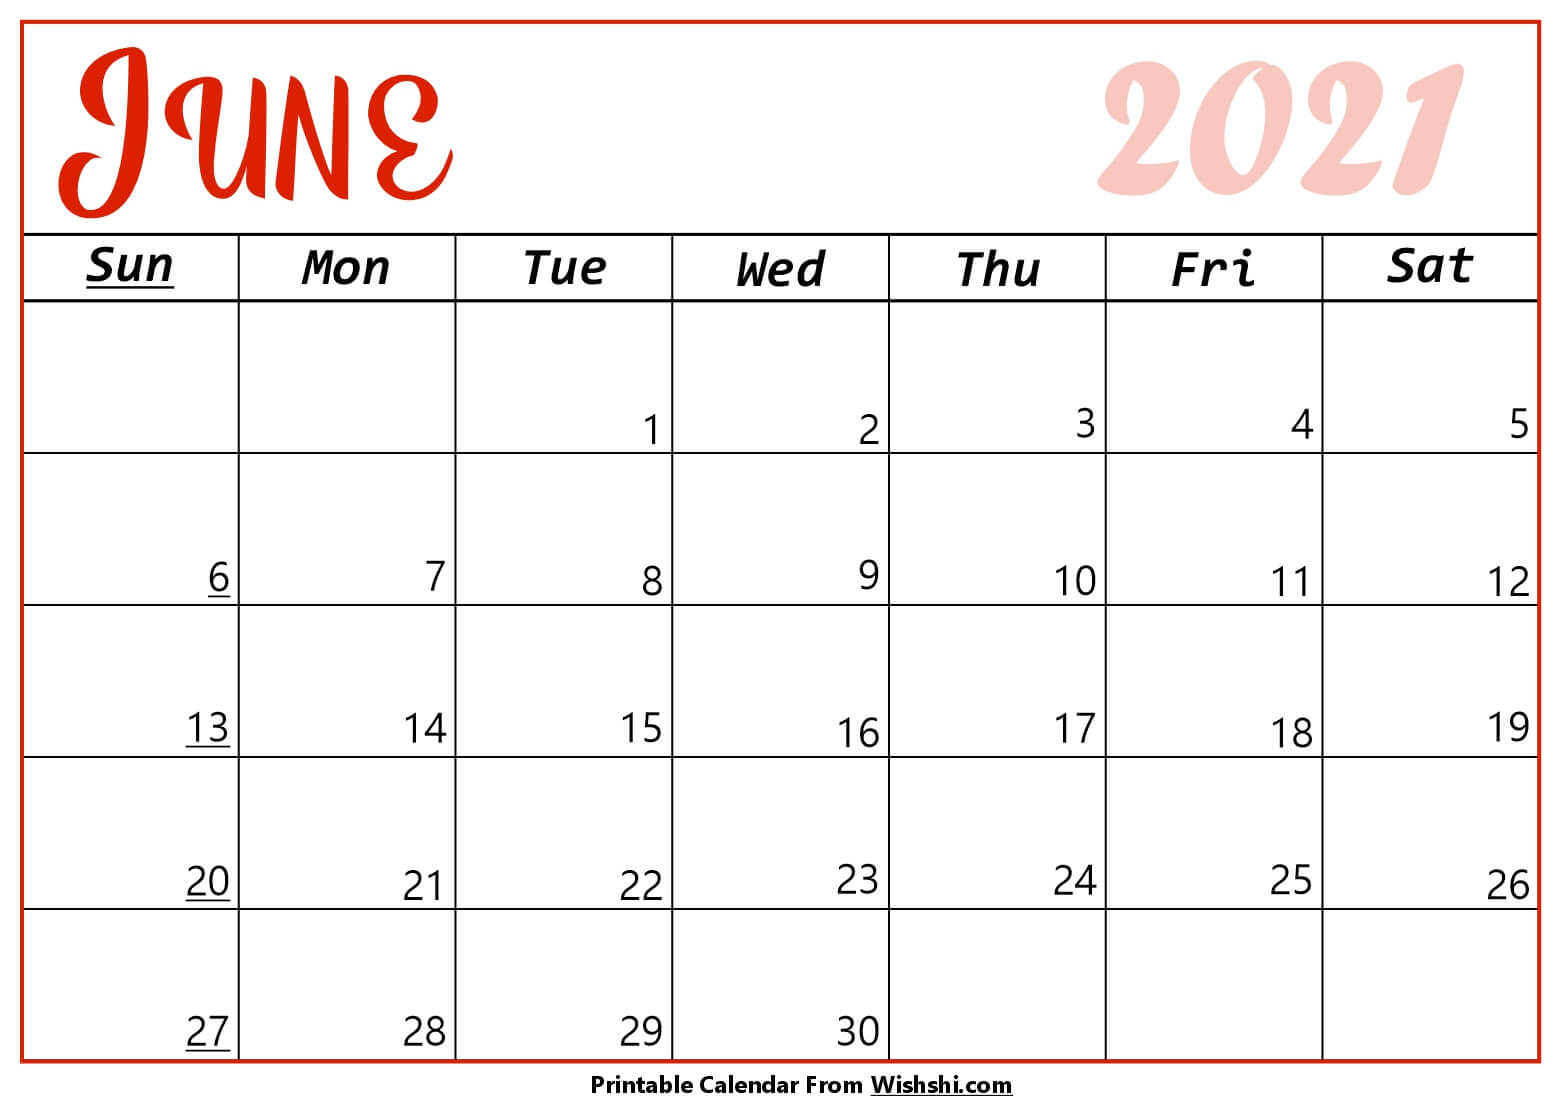 June 2021 Calendar Printable  Free Printable Calendars for 2021 Calendar Hong Kong Excel Format